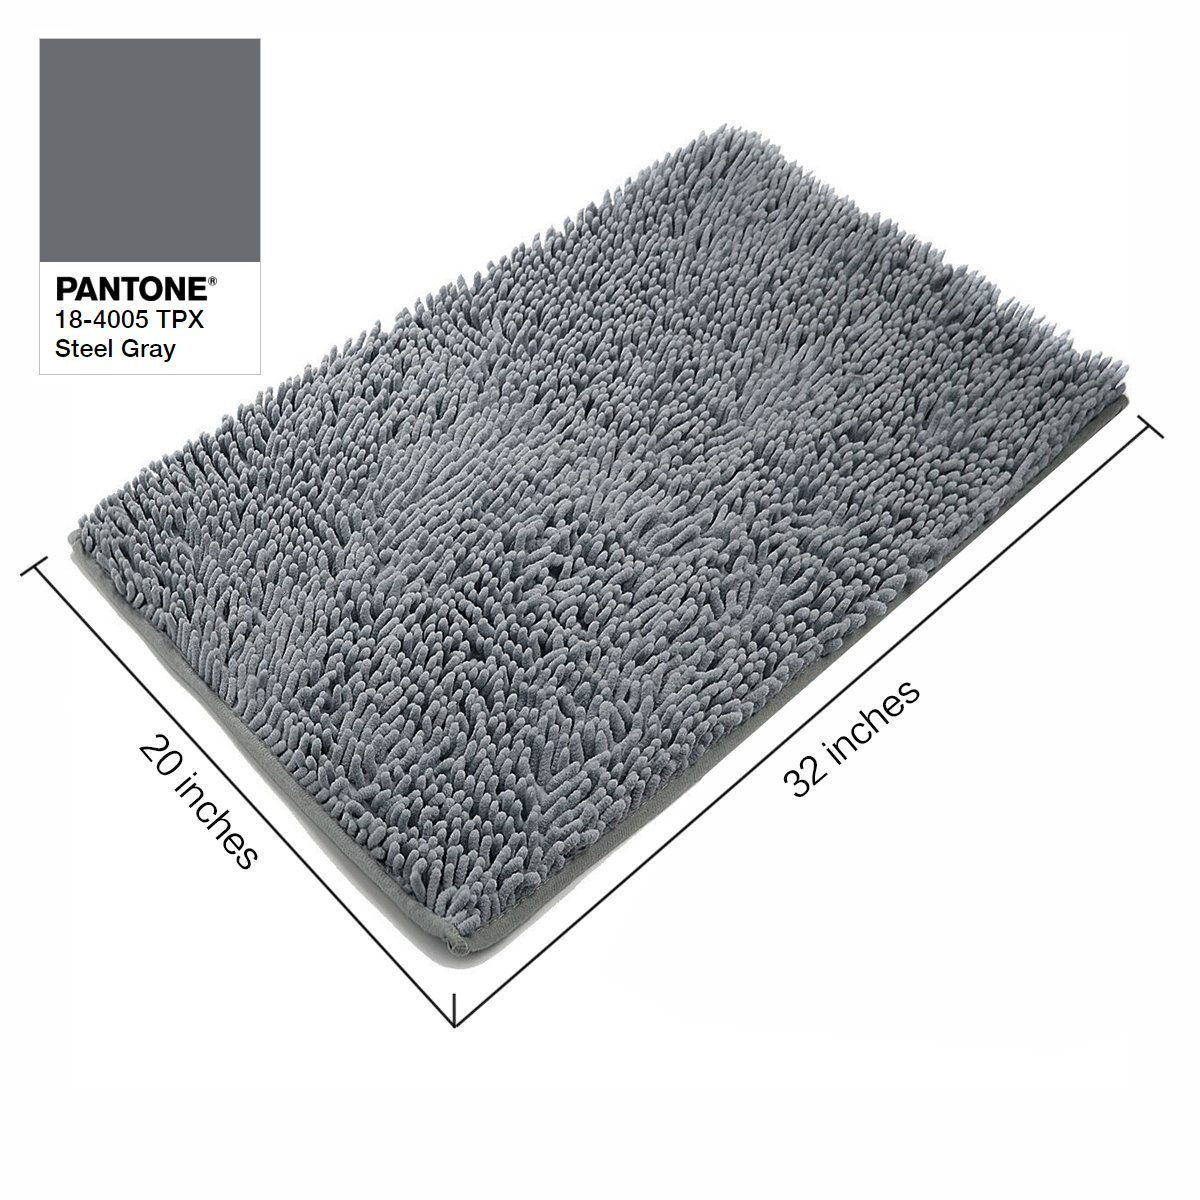 Amazon.com: VDOMUS Absorbent Microfiber Bath Mat Soft Shaggy ...